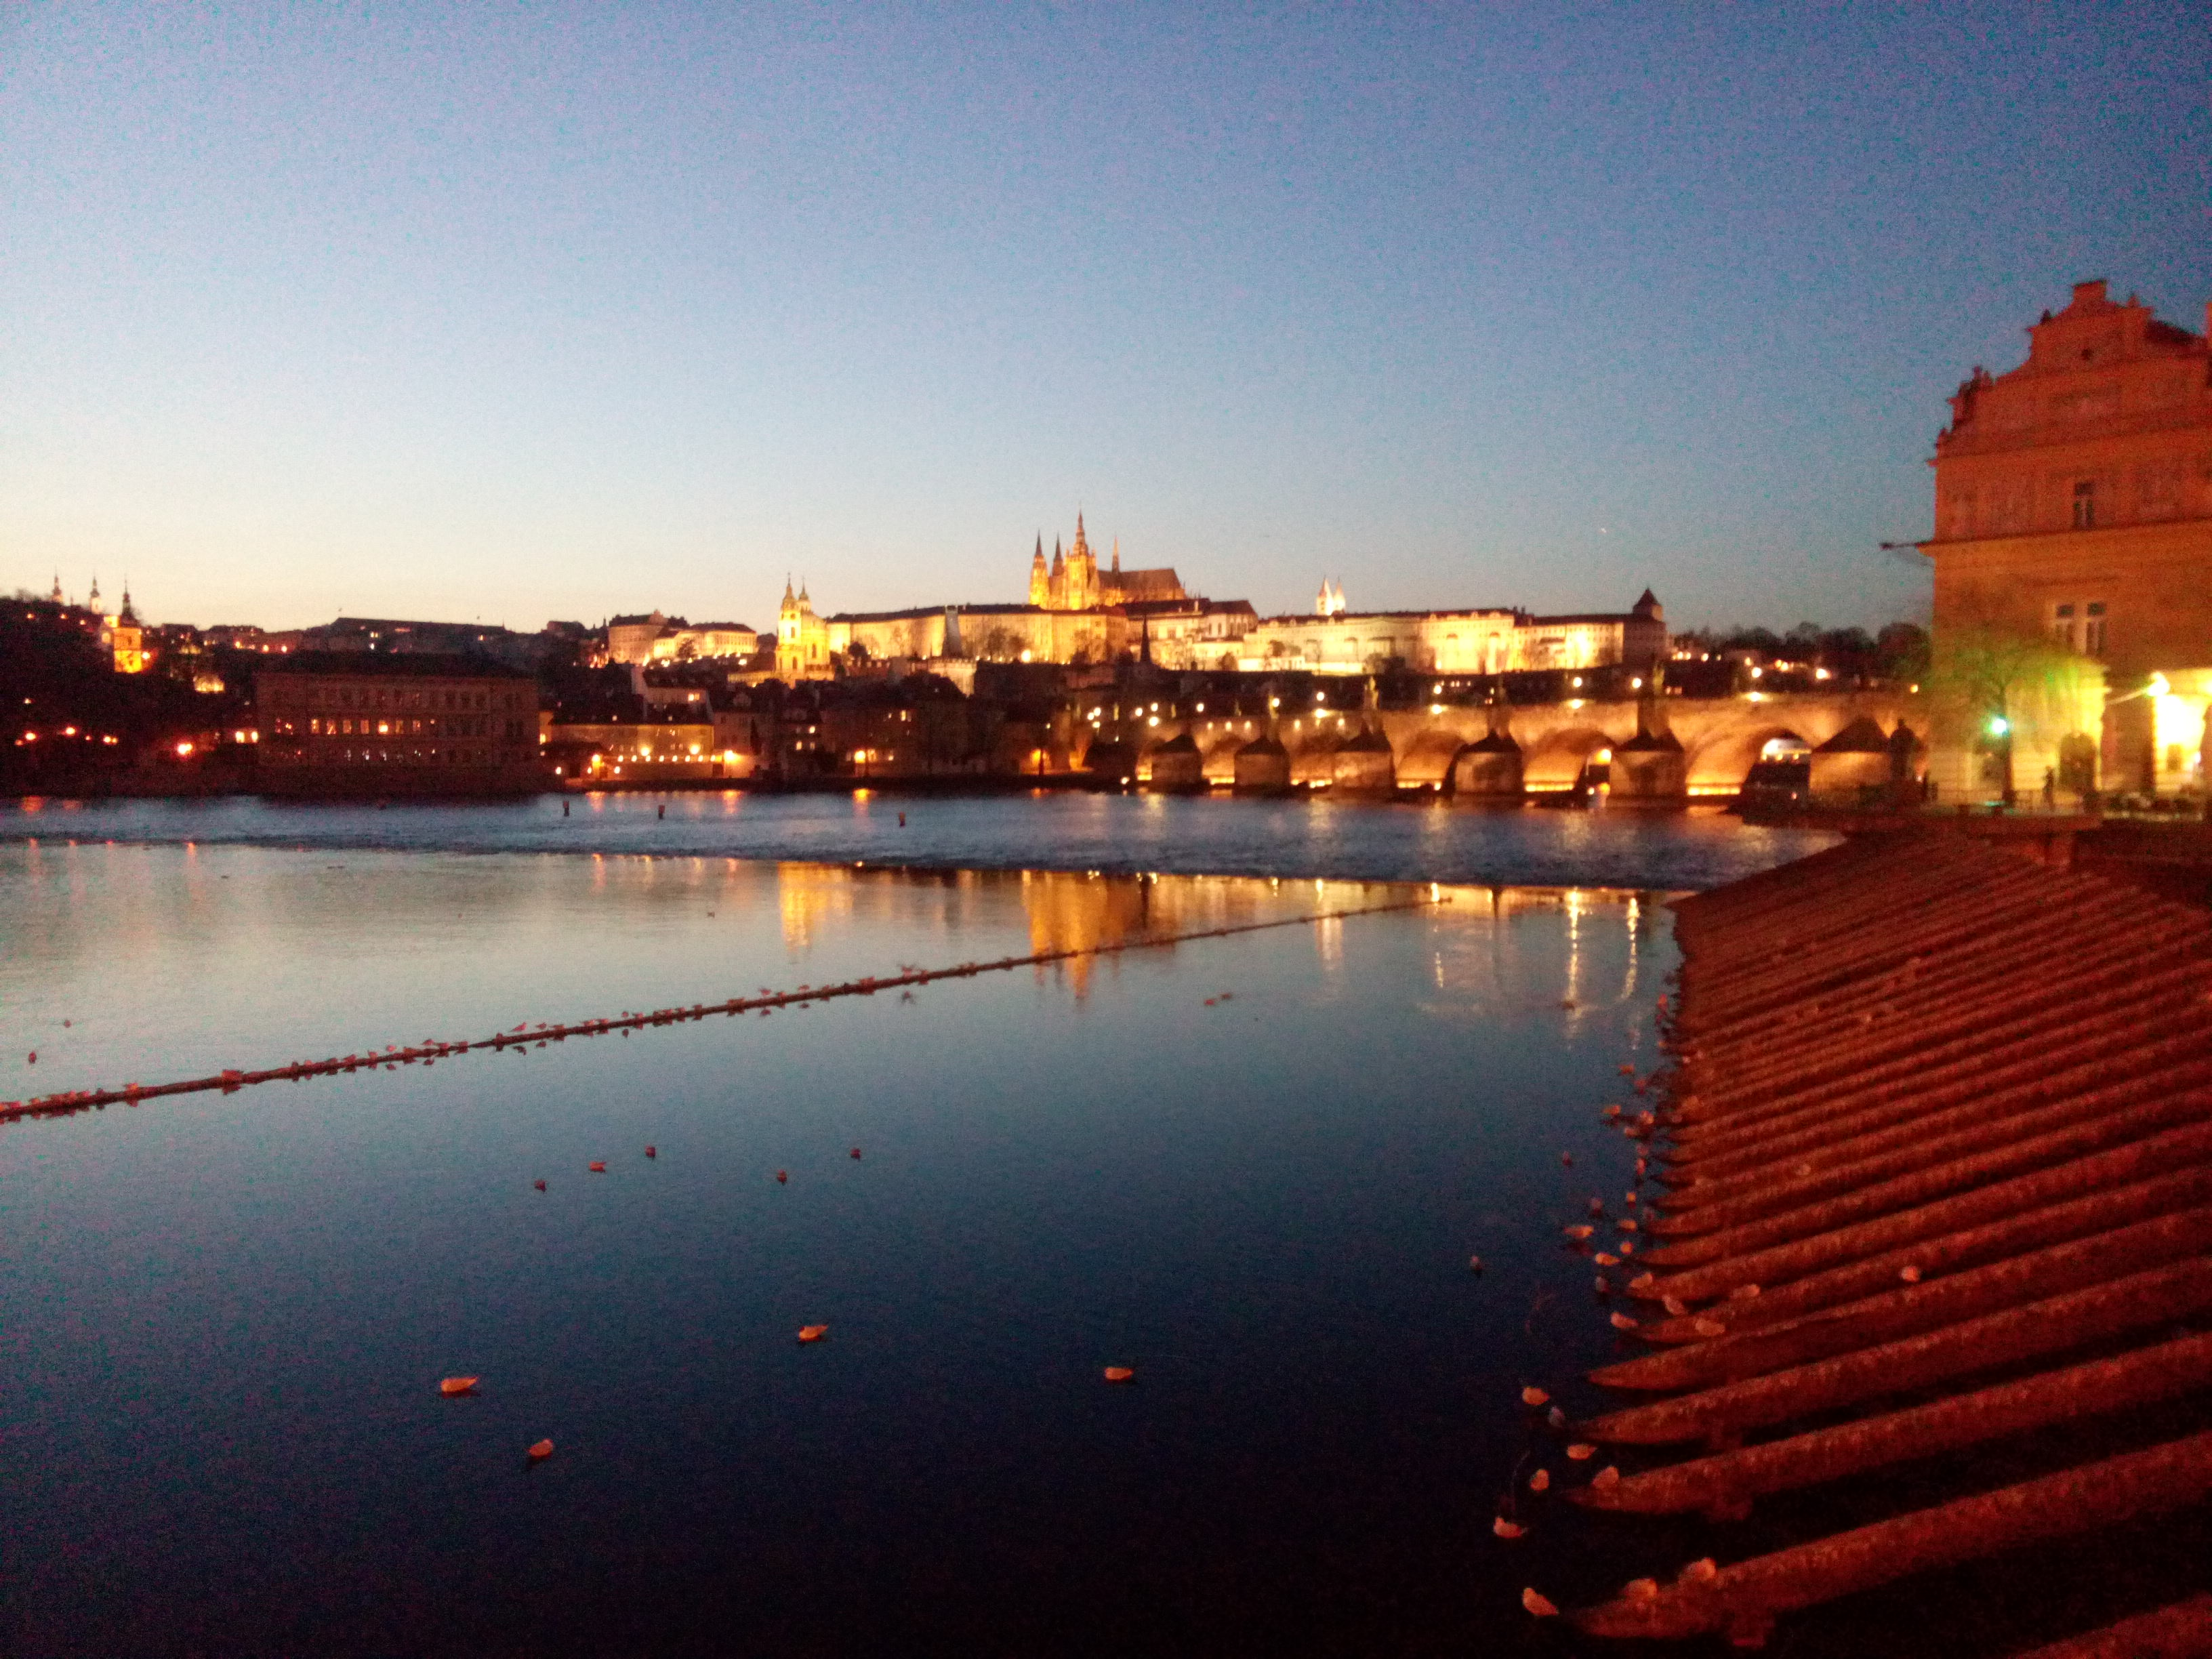 Orange lights reflect on the blue river, with the cathedral and castle on a hill in the distance